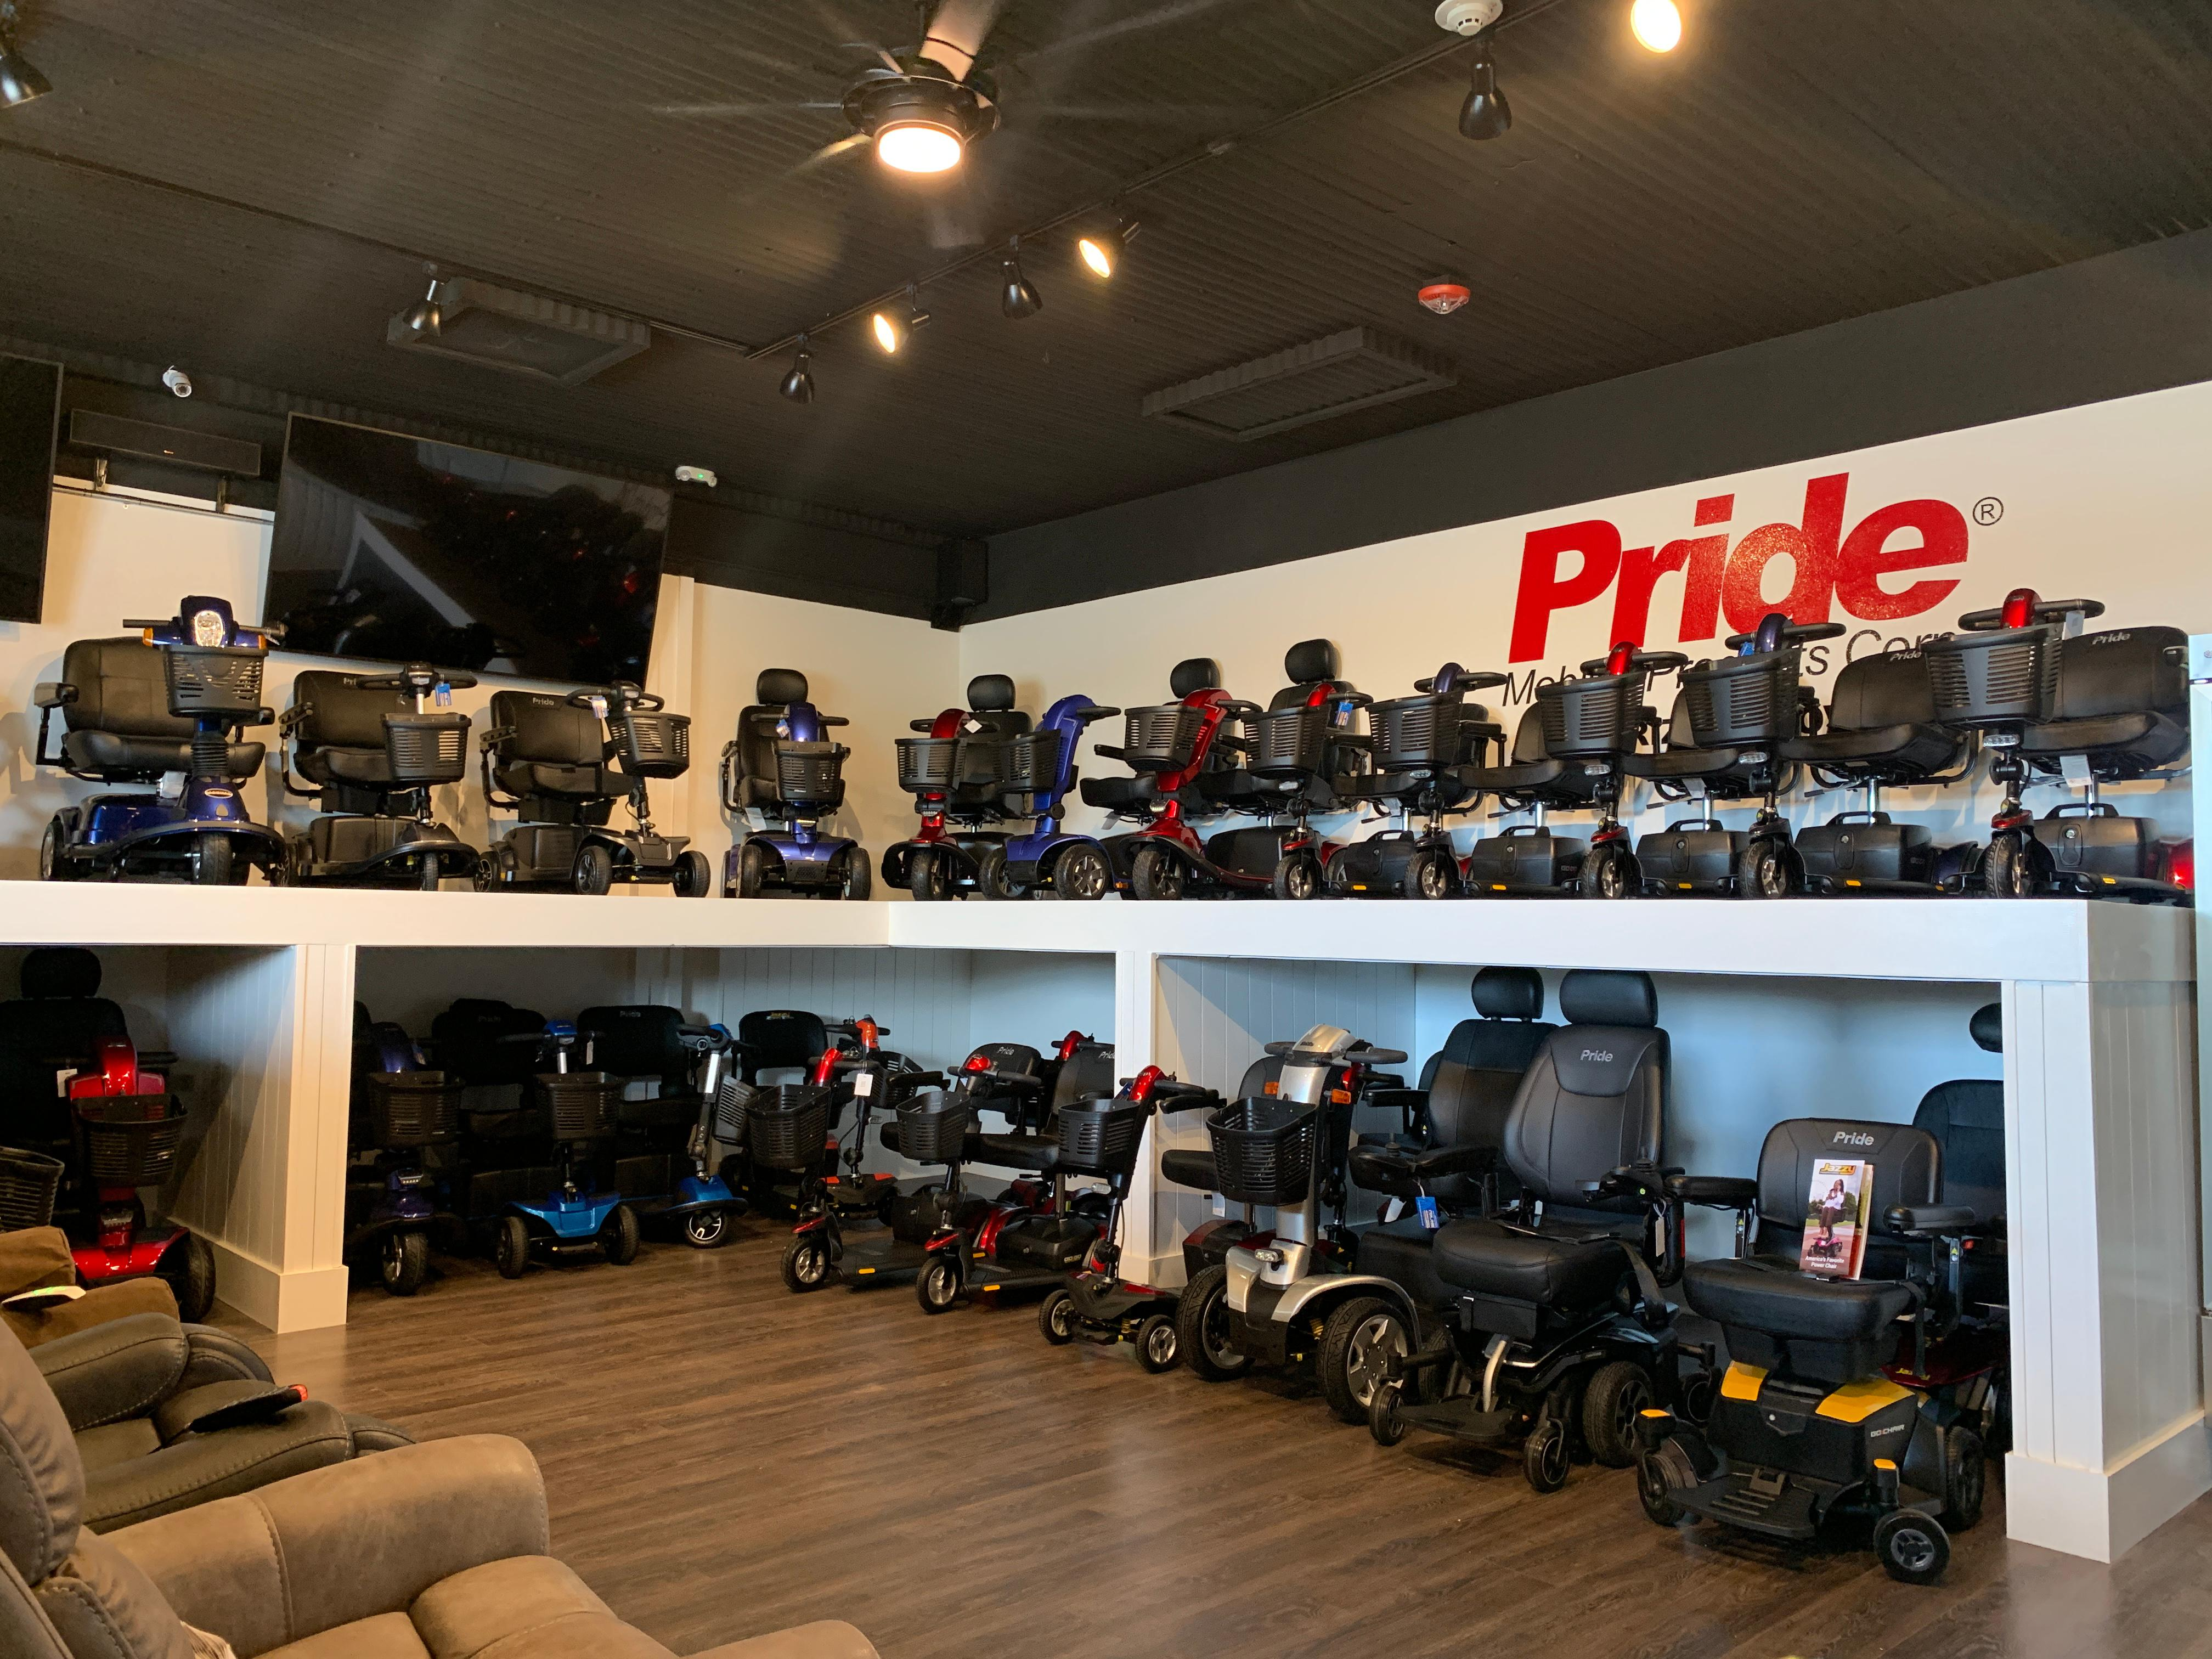 The Mobility Store  by Gold Mobility Scooters. We sell and rent top of the line Pride Mobility Scooters in our rent a scooter line. Theme Parks and Orlando Florida Area scooter rentals. Best rental Prices, Premium brand new scooters for rent, Free Delivery and Pickup, Free Damage Waver, Free Accessories, and Custom upgrades. 5 star rated scooter rental company. Scooter Rental info at https://goldmobilityscooters.com or Call us at 407-414-0287